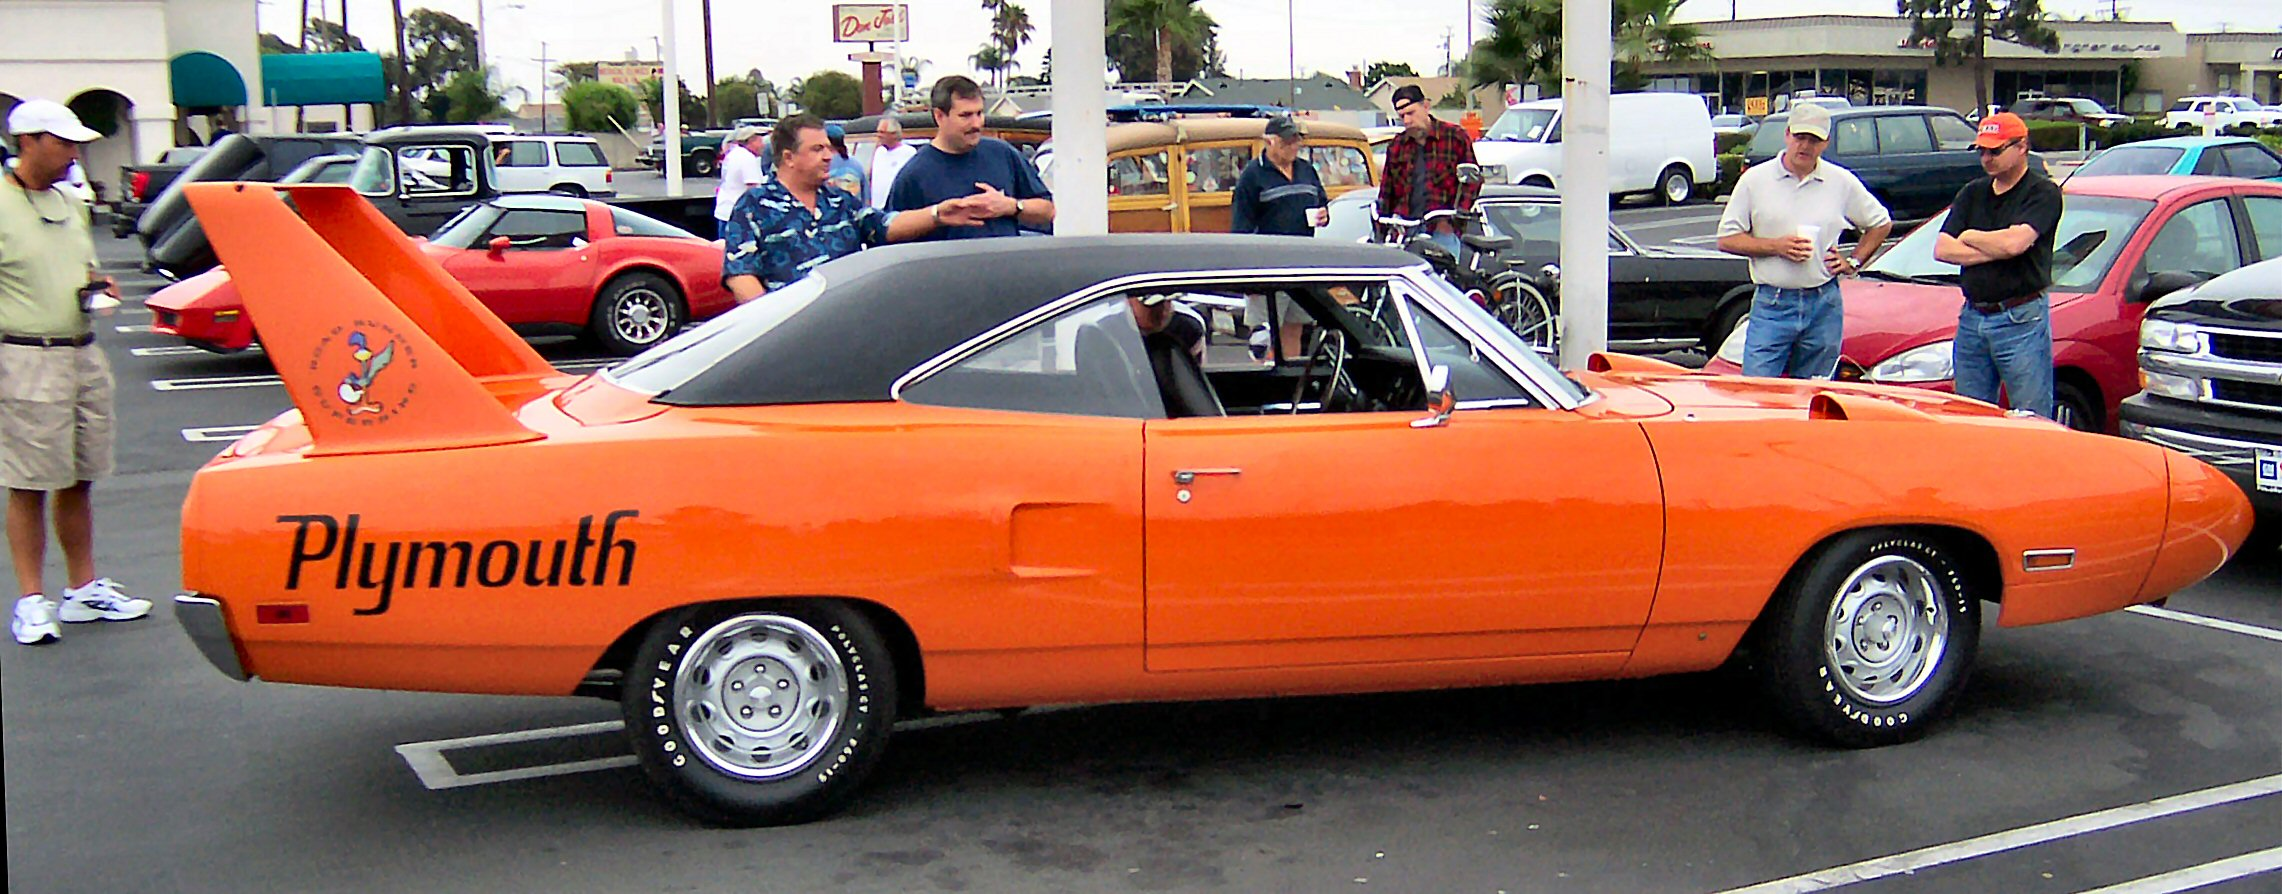 Plymouth Road Runner History Photos On Better Parts Ltd